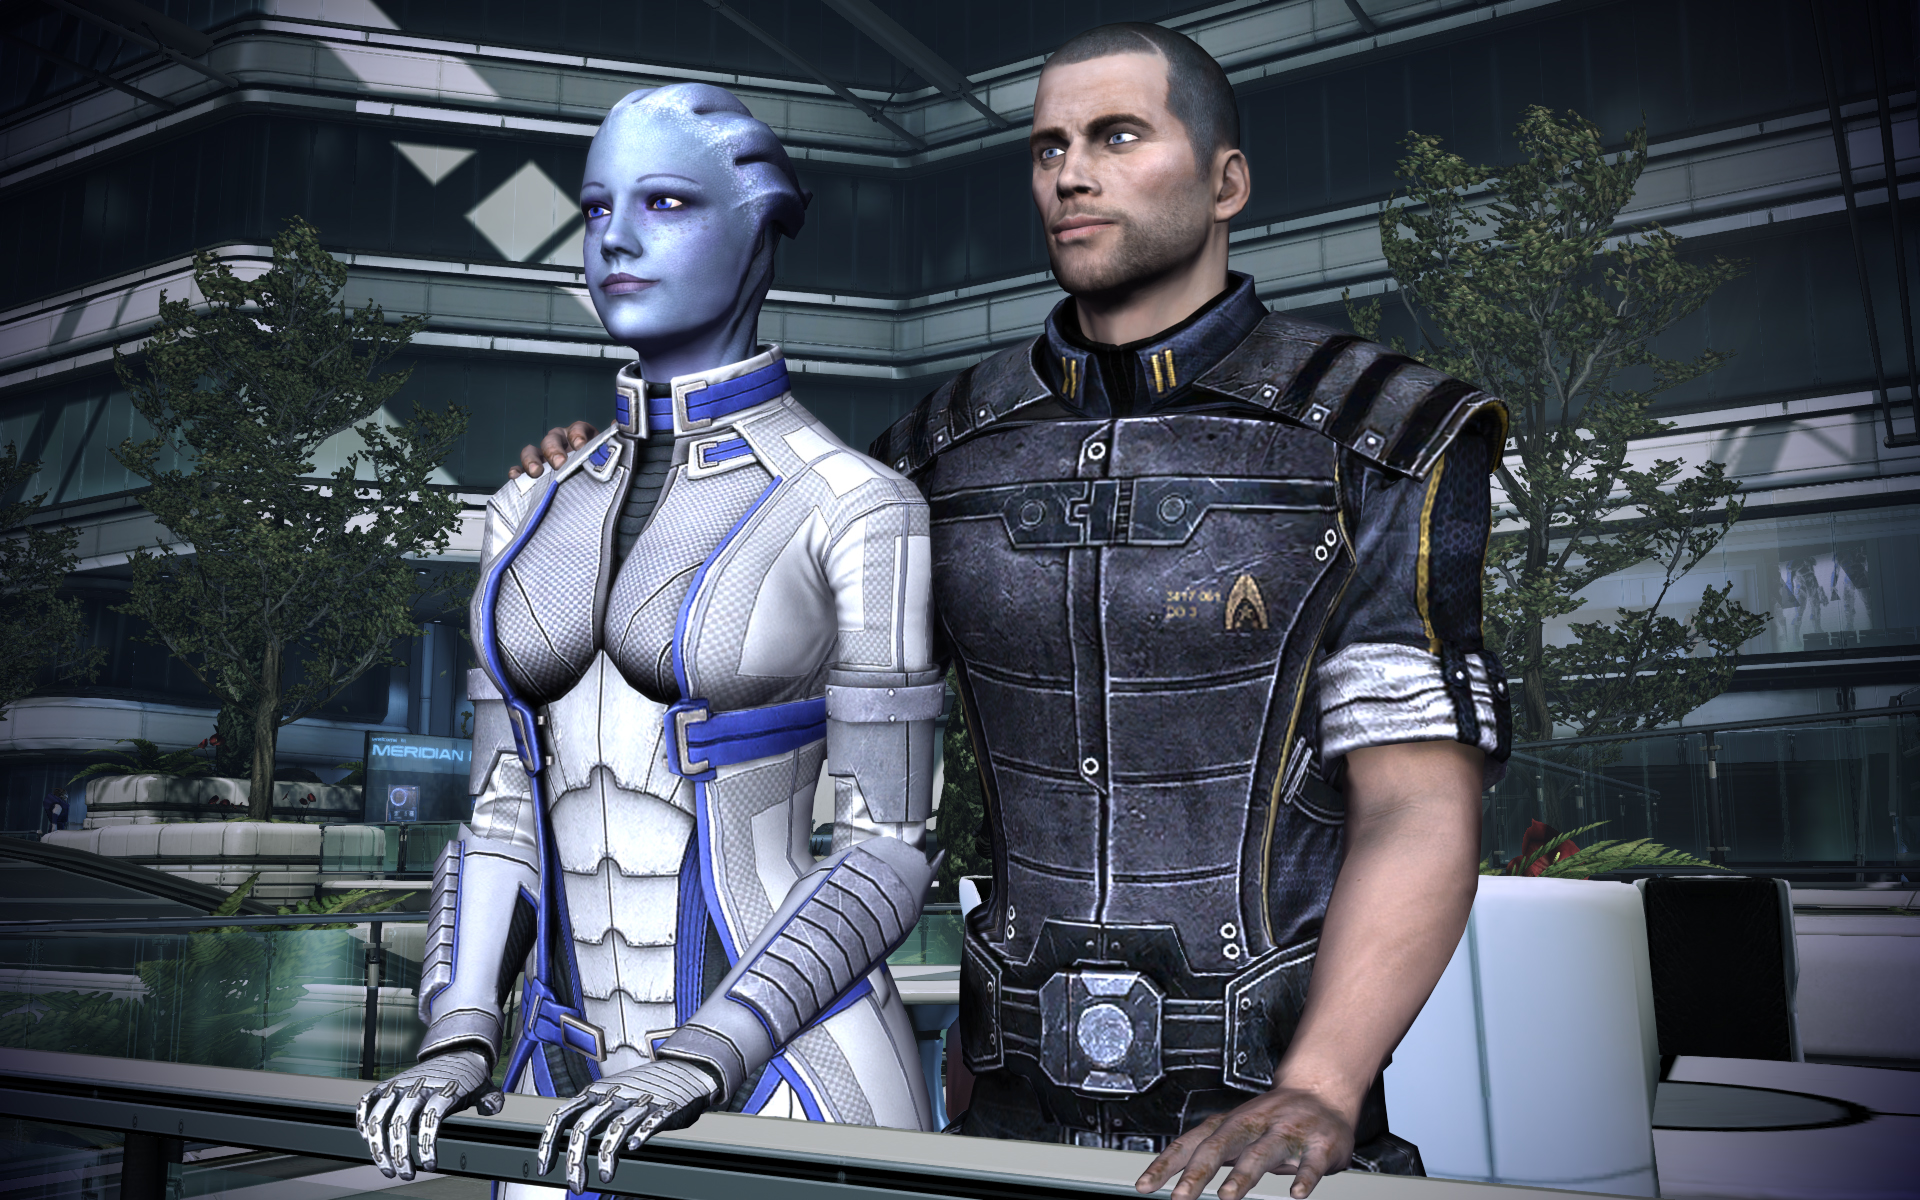 Some Mass Effect couples are better than others, but who am I to judge? The whole point of Mass Effect is for you to choose what fits you best.